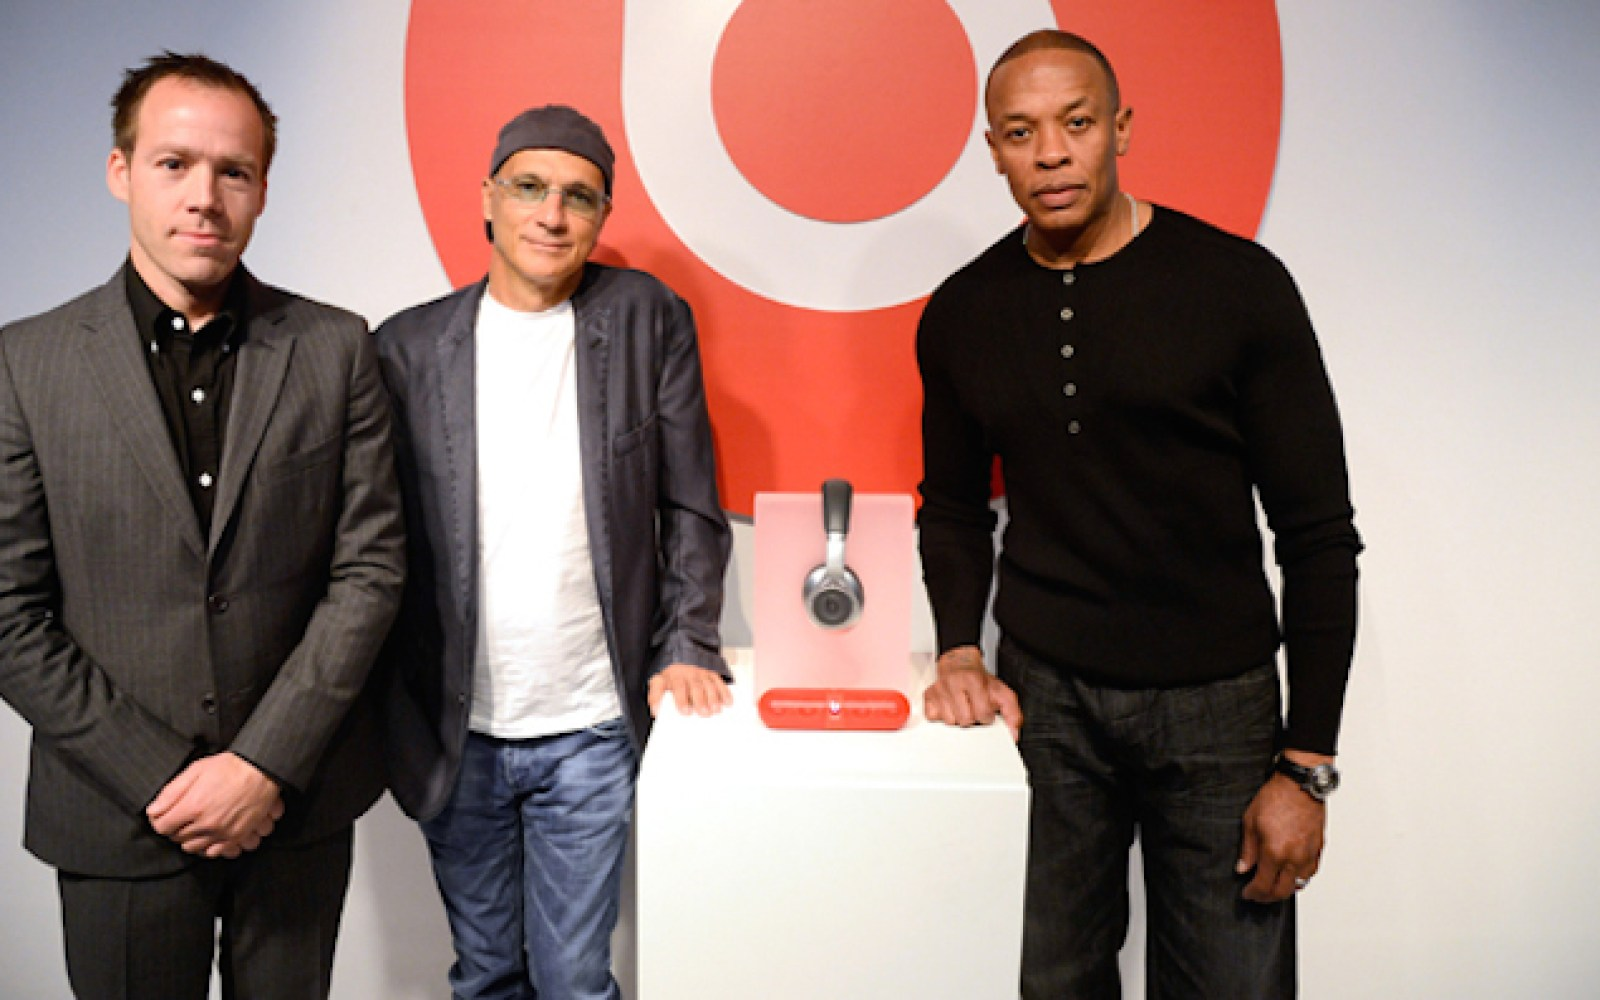 MOG founder and former Beats Music CEO suing Beats for $20 million ahead of expected Apple buy